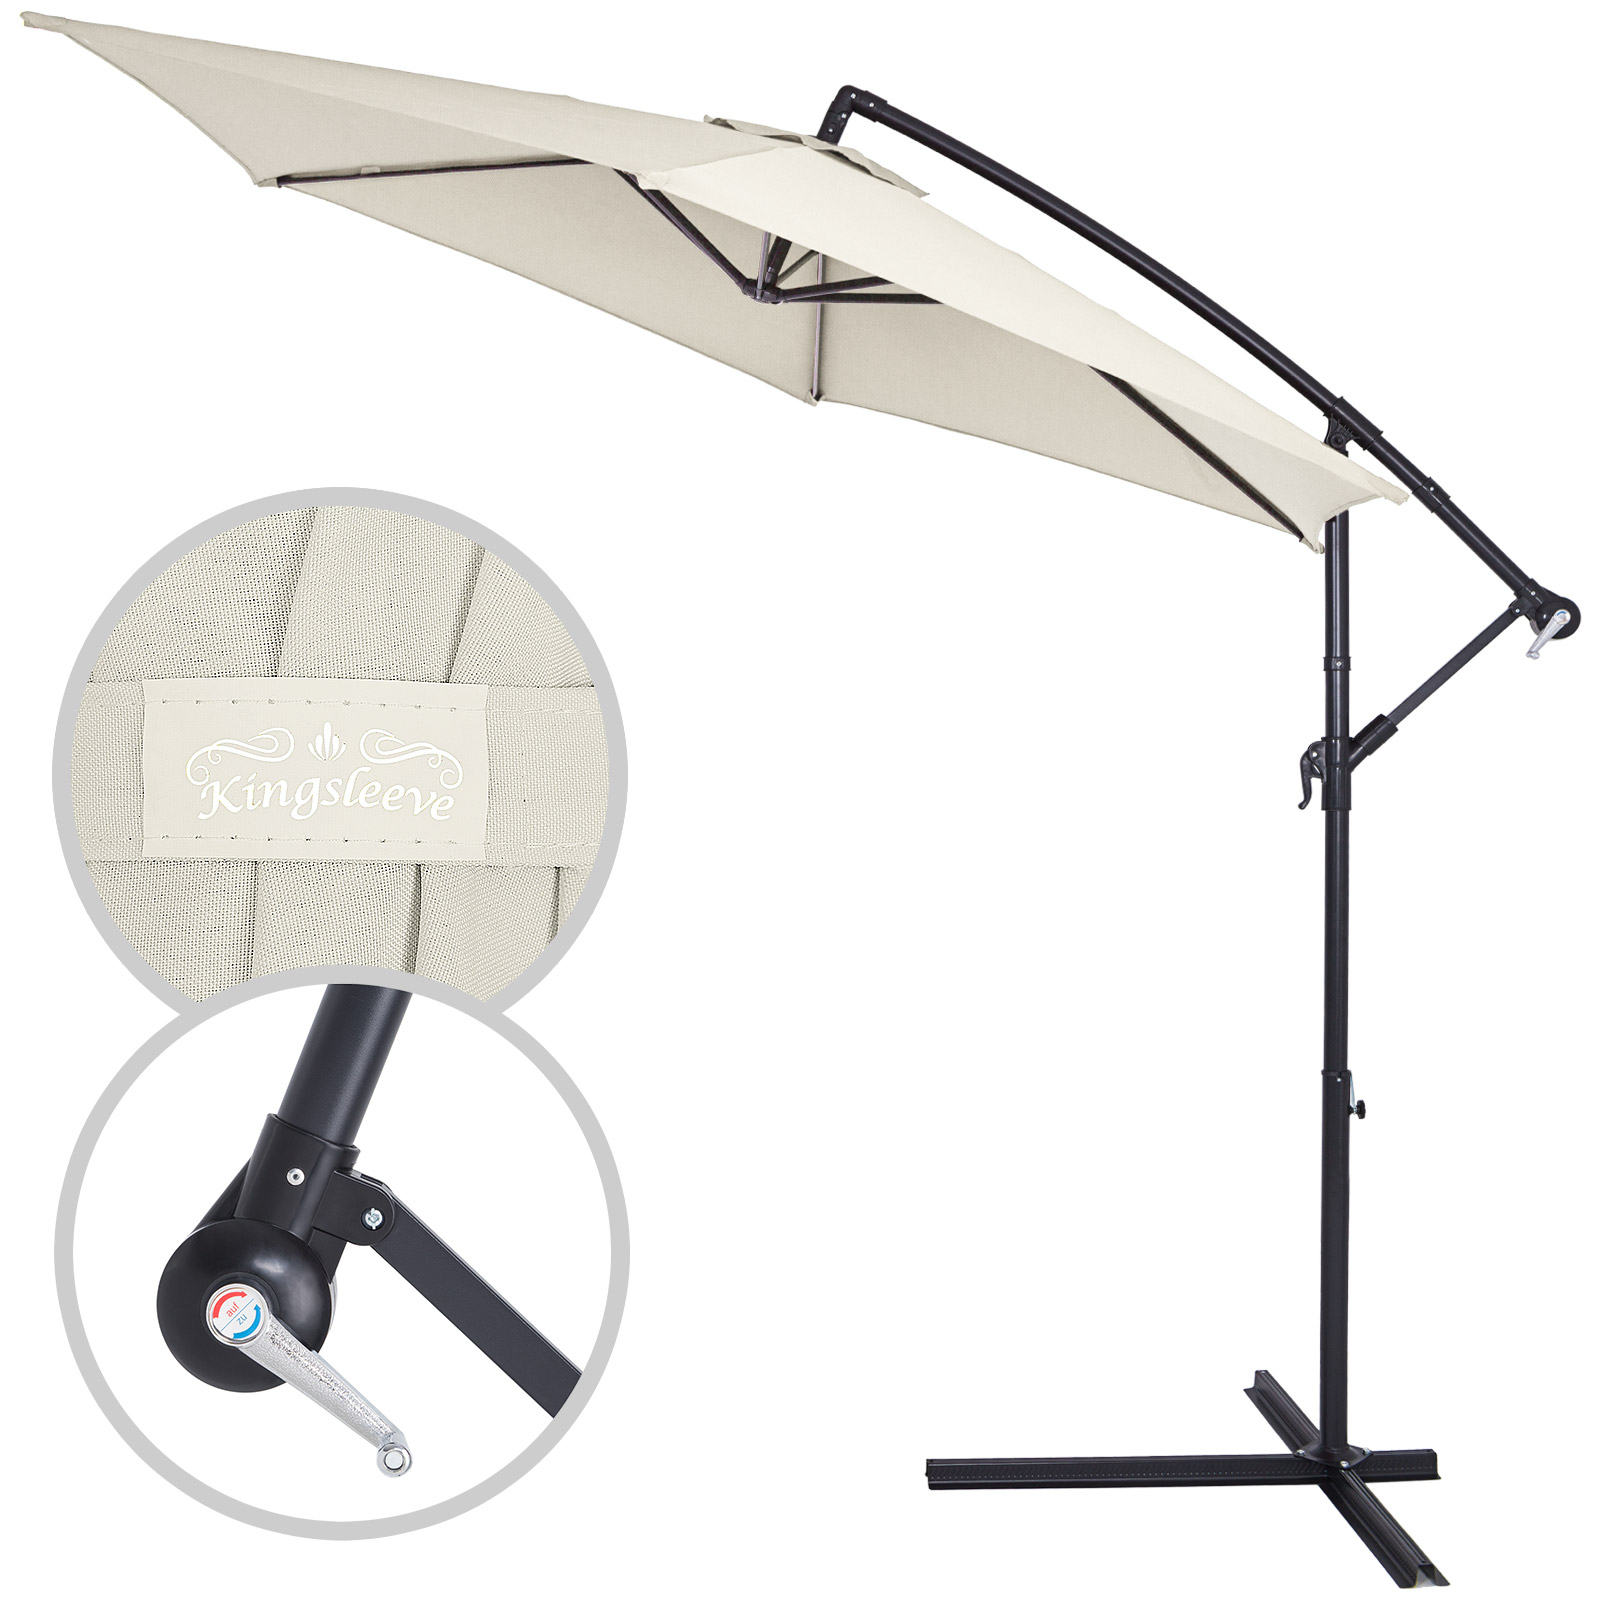 parasol aluminium pare soleil jardin terrasse balcon manivelle 350cm ebay. Black Bedroom Furniture Sets. Home Design Ideas